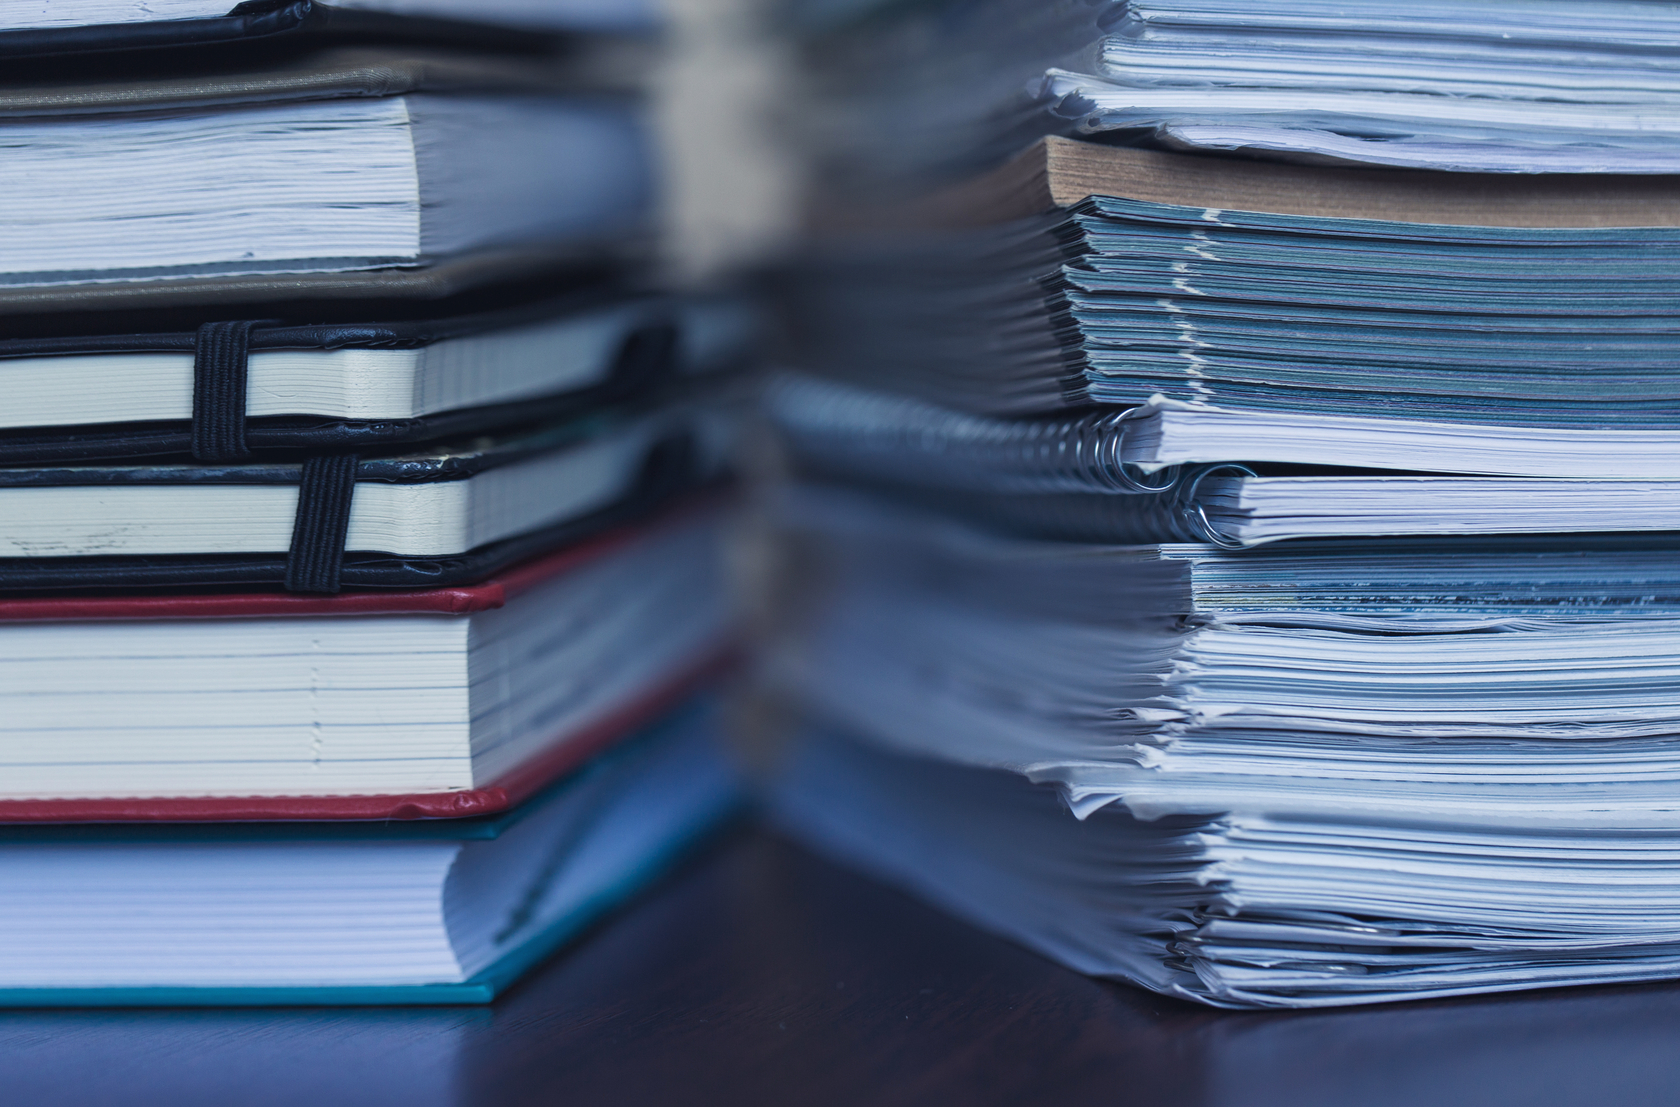 Accounting and taxes. Large pile of magazine and books closeup